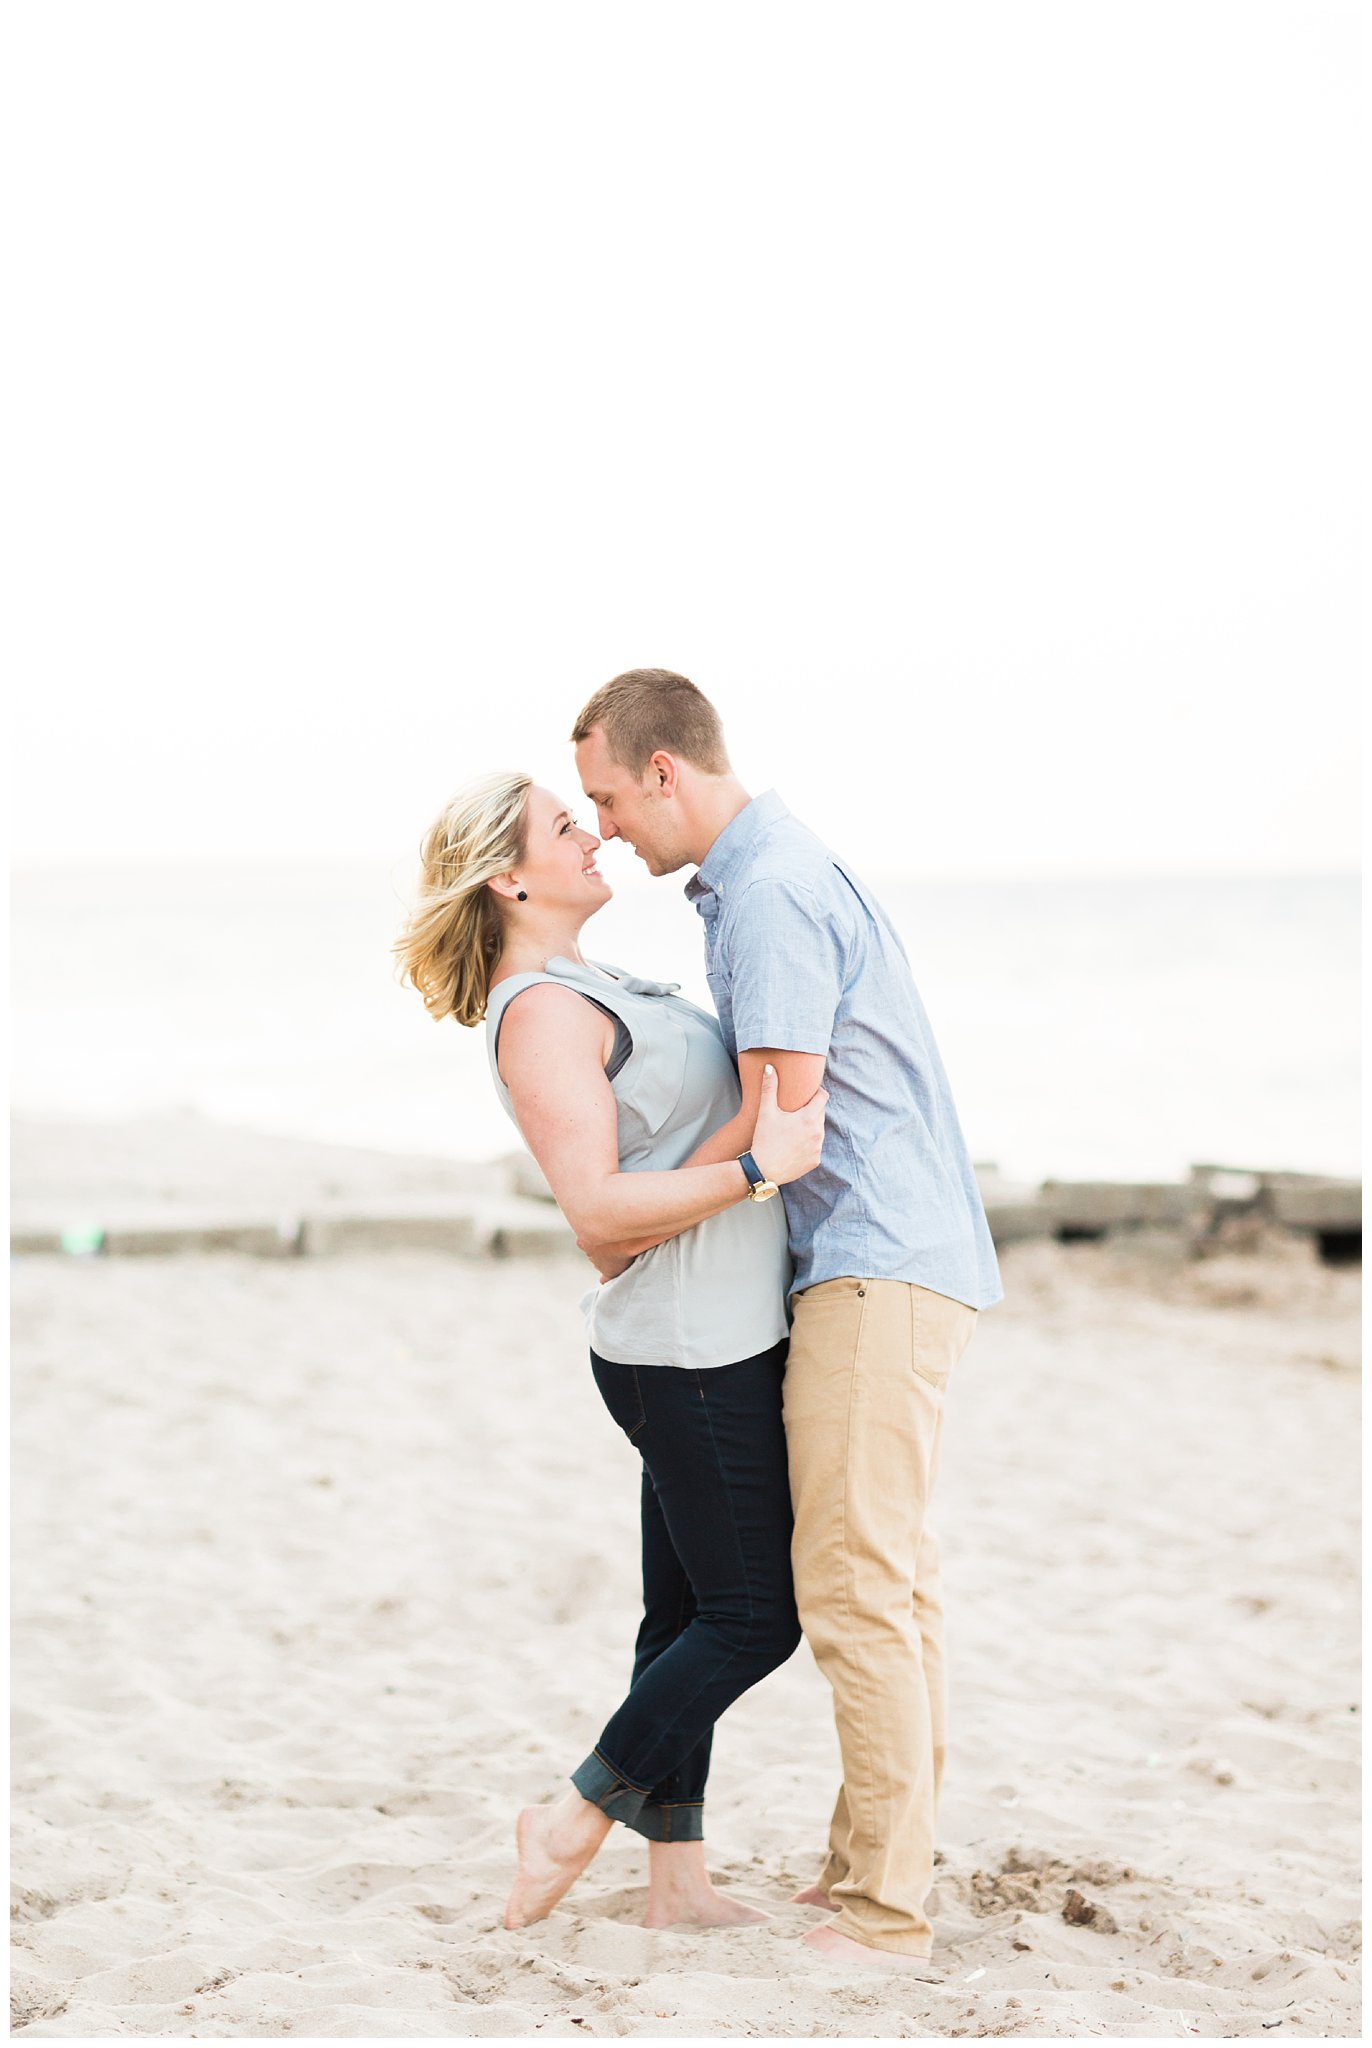 C&G_MilwaukeeEngagementSession__0122.jpg